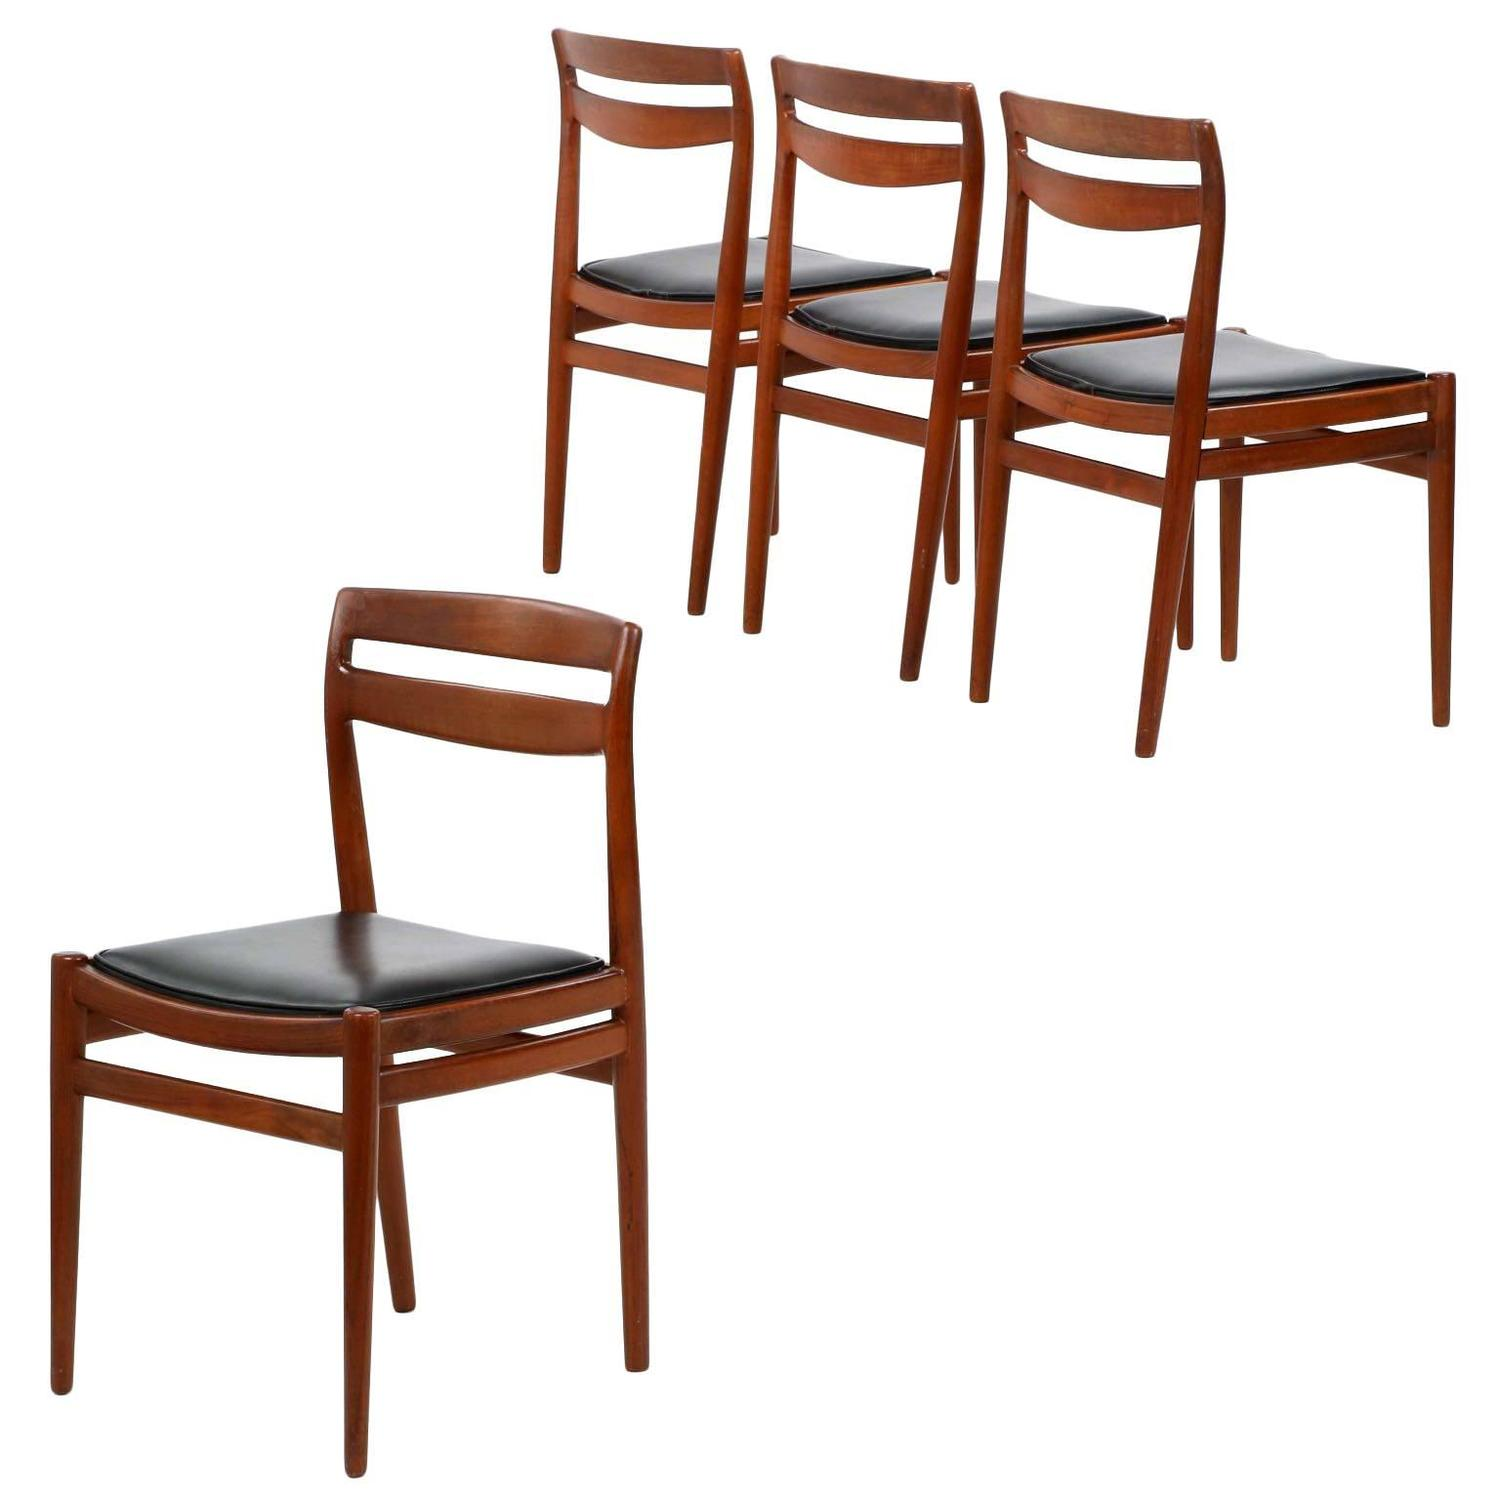 Wooden moon chairs - Four Danish Mid Century Modern Teakwood Side Chairs Retailed By Leo Spivak Inc At 1stdibs